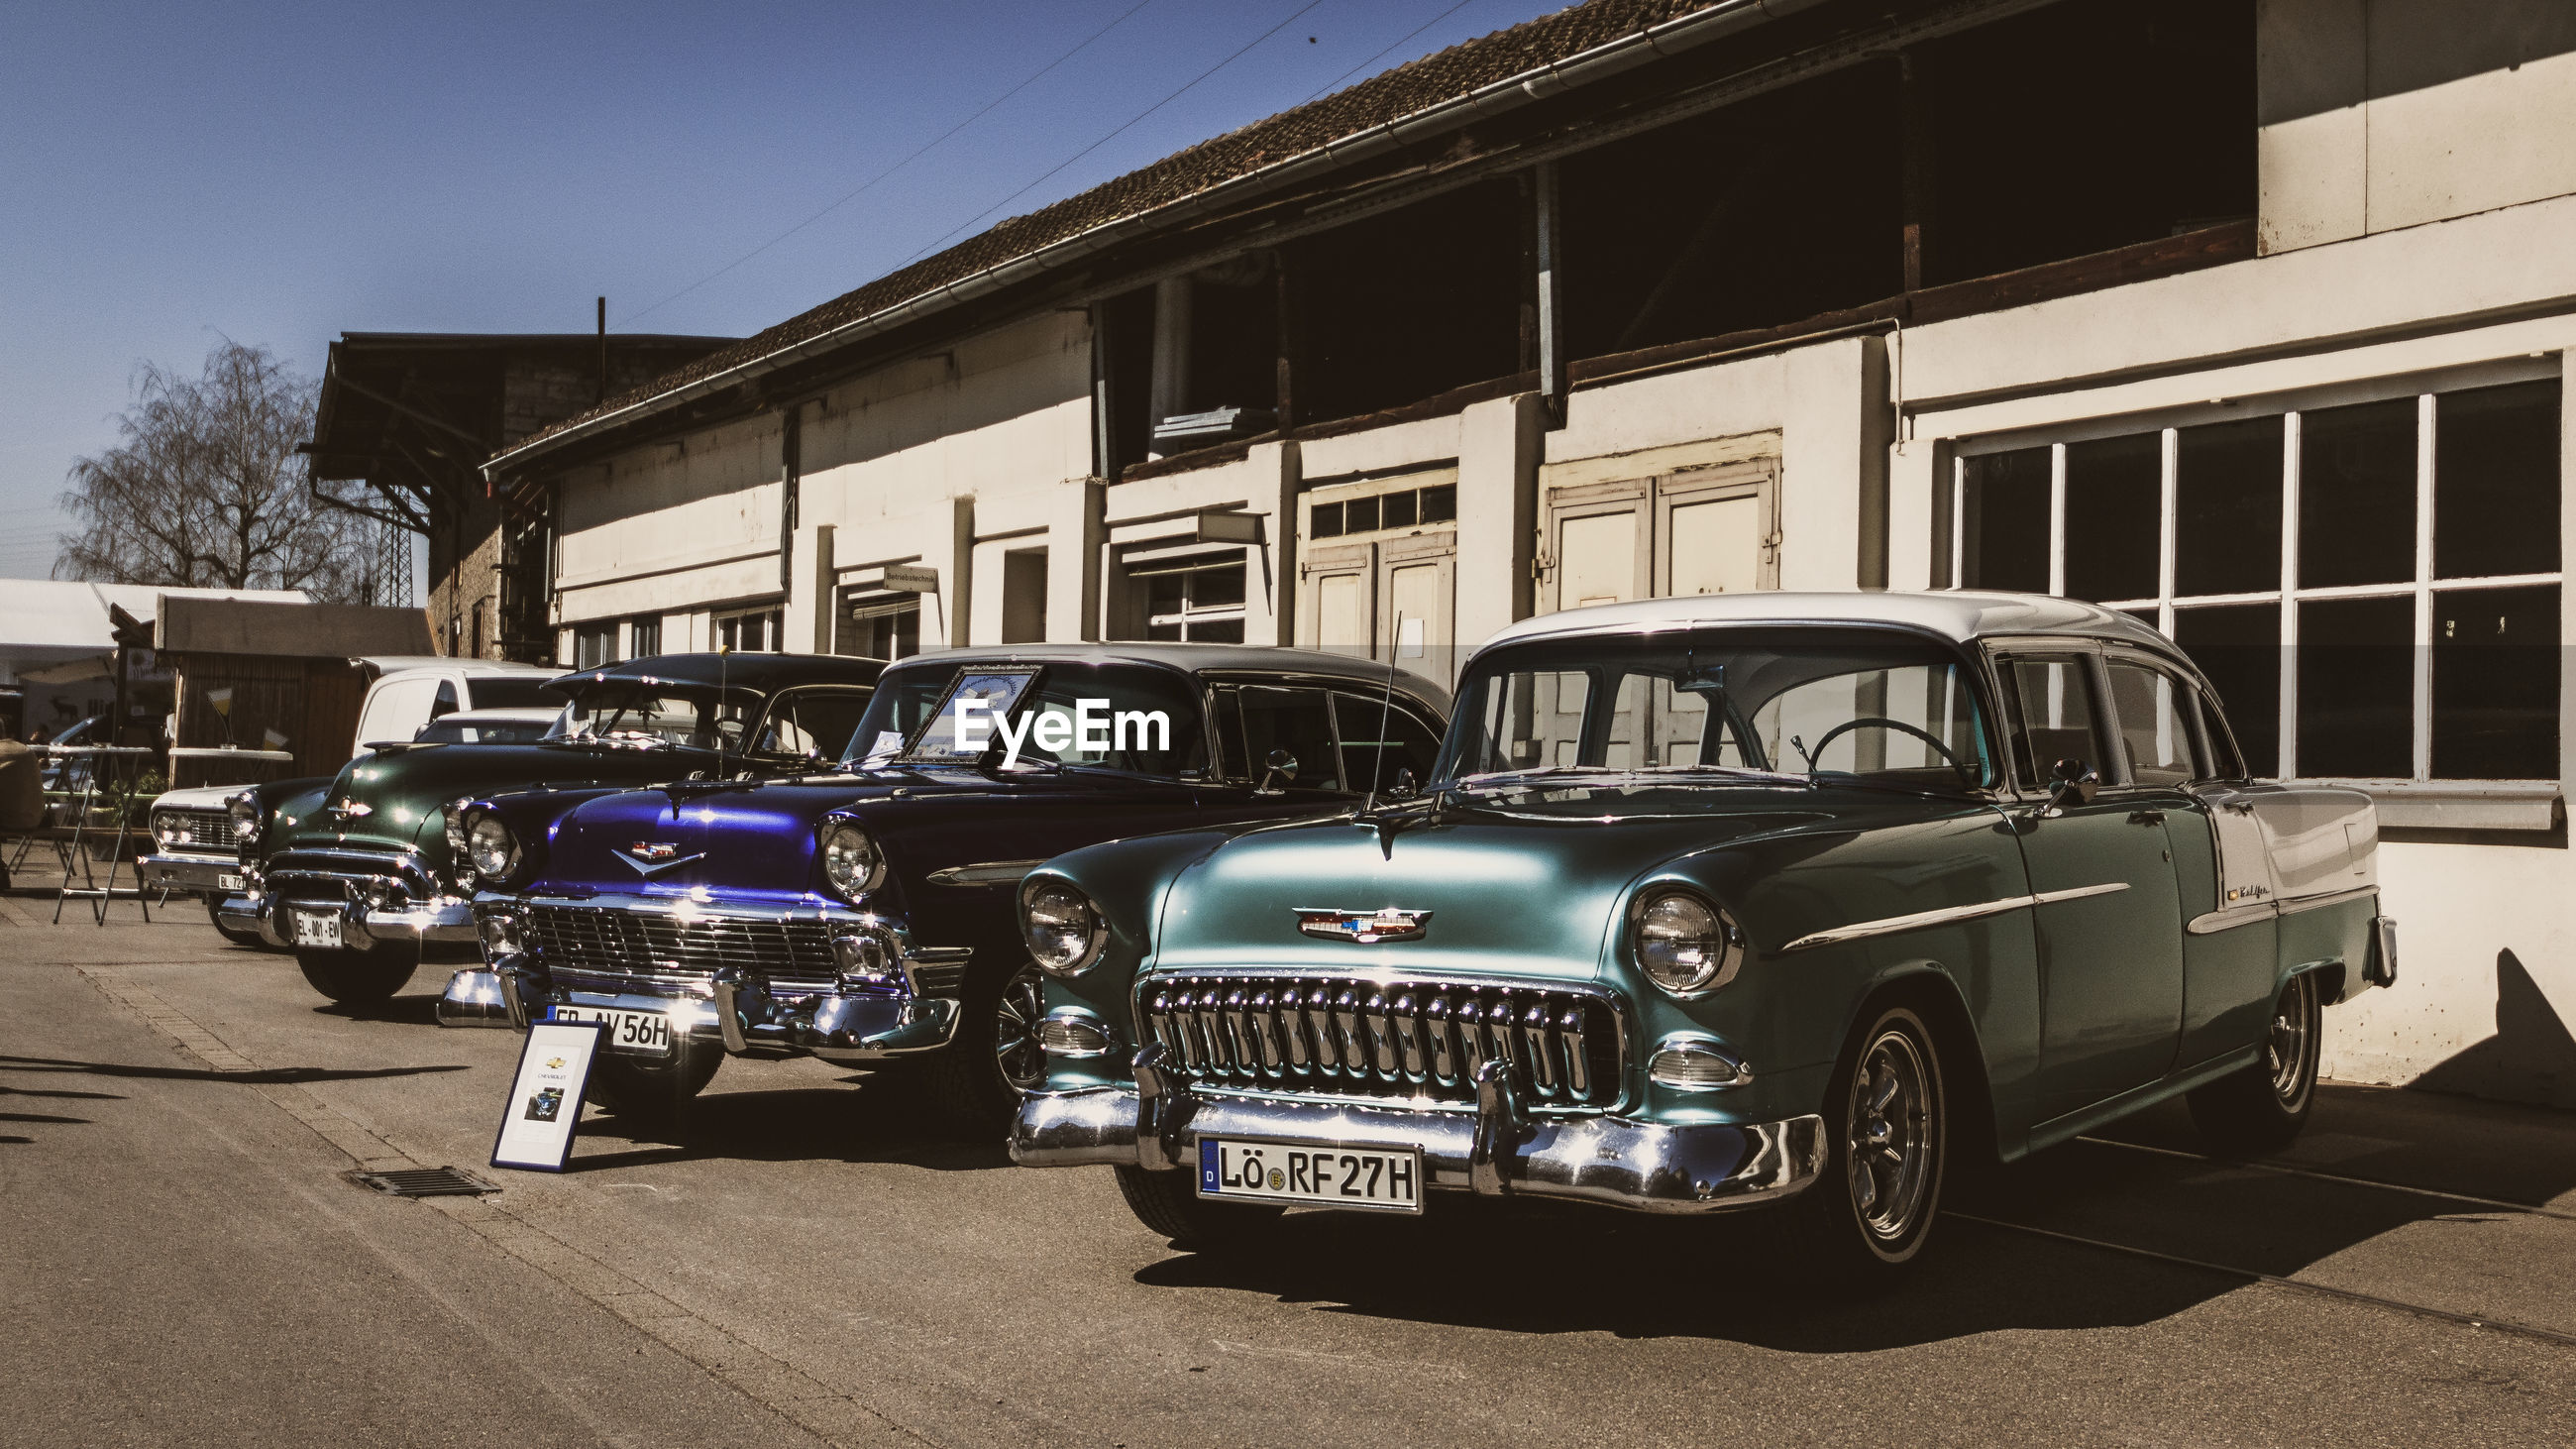 mode of transportation, transportation, motor vehicle, building exterior, land vehicle, built structure, car, architecture, street, city, stationary, no people, retro styled, road, vintage car, day, outdoors, building, parking, luxury, garage